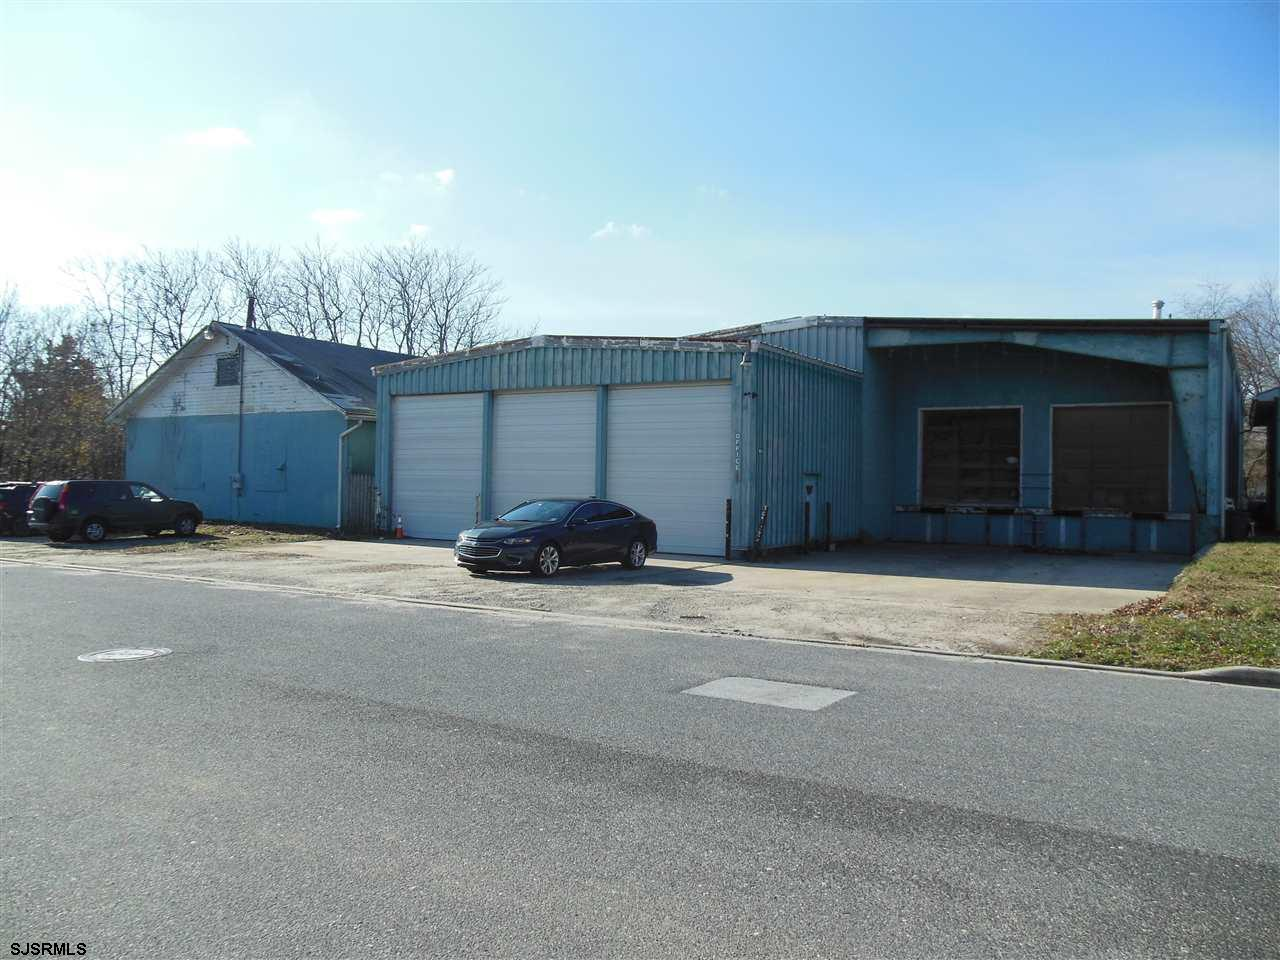 NEW PRICE!!! Great Opportunity to rent approx. 9000 sq ft steel building with solid concrete floor, well insulated, natural gas heat, public utilities & loading docks. Clean wide open space , has an office area, break room and a bathroom. Also listed for sale , see mls # 527737. Call listing agent for details.